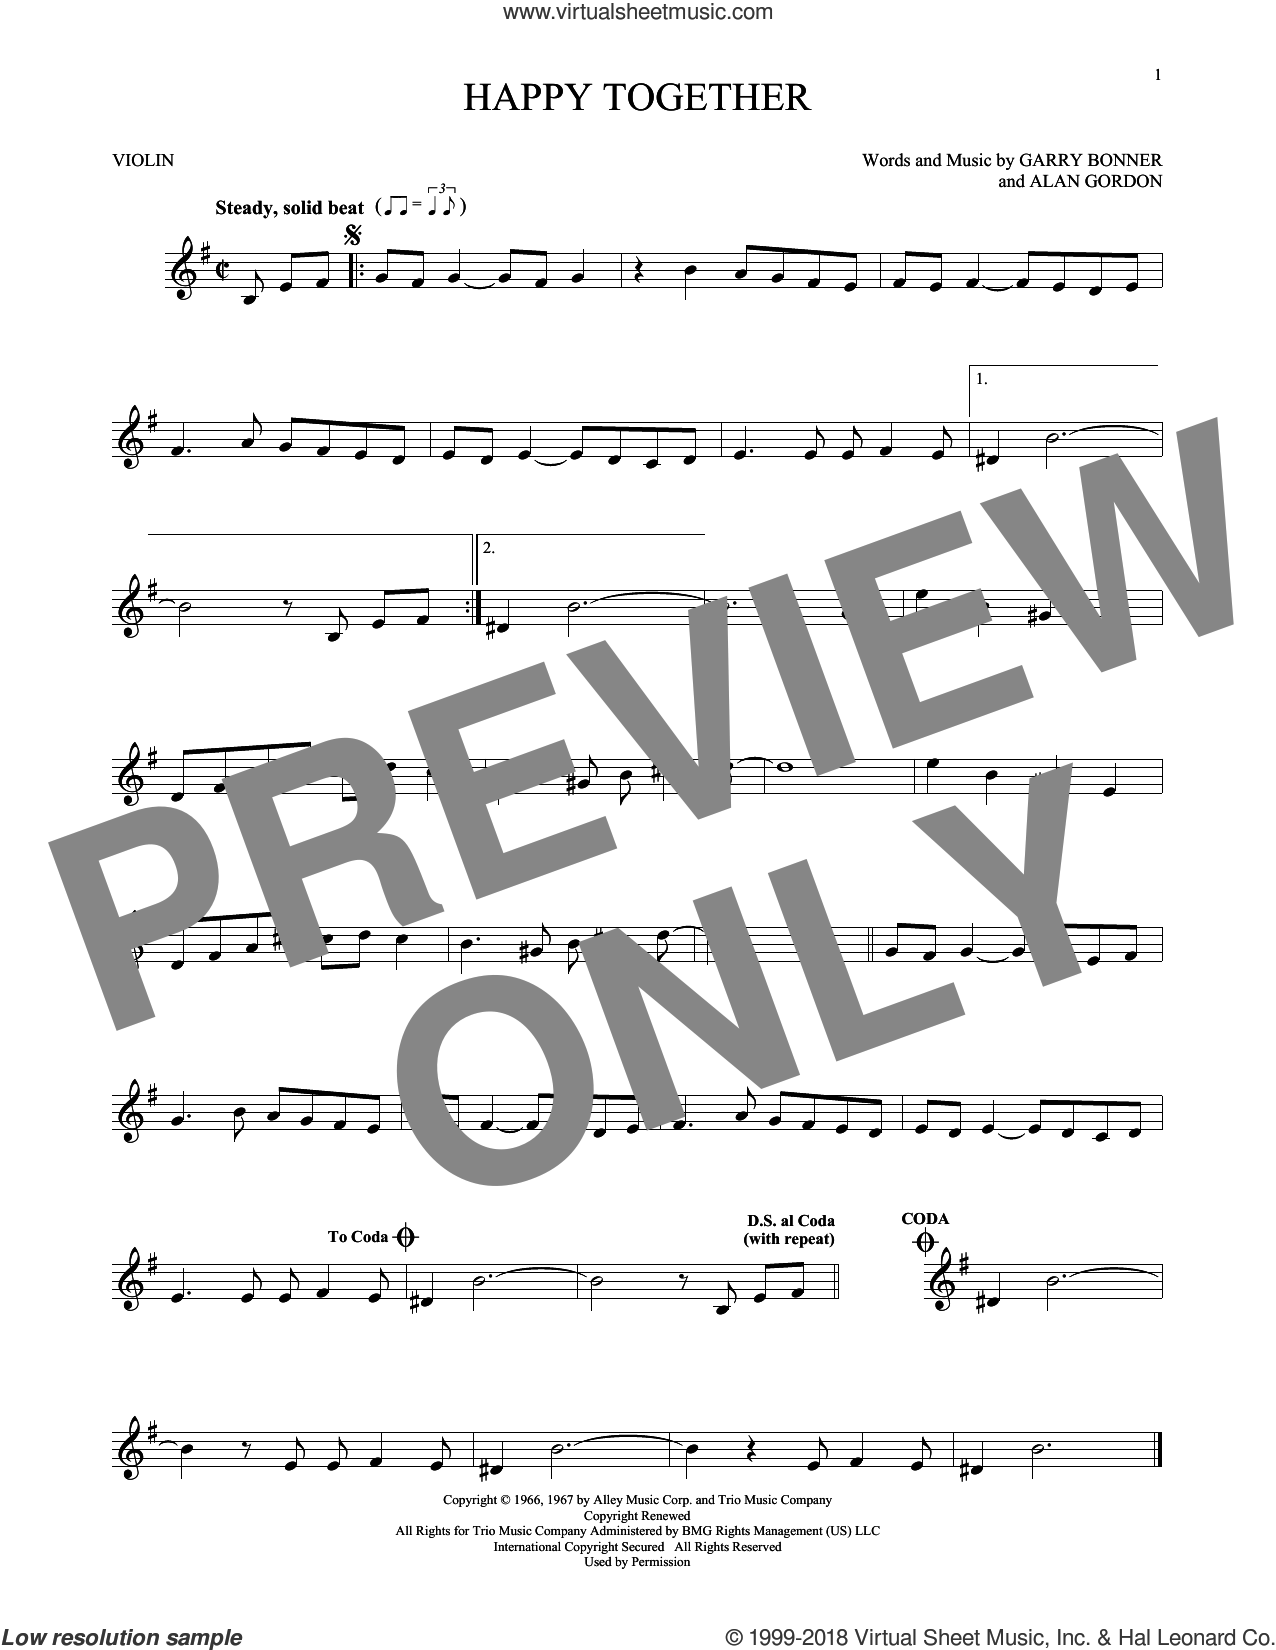 Happy Together sheet music for violin solo by The Turtles, Alan Gordon and Garry Bonner, intermediate skill level